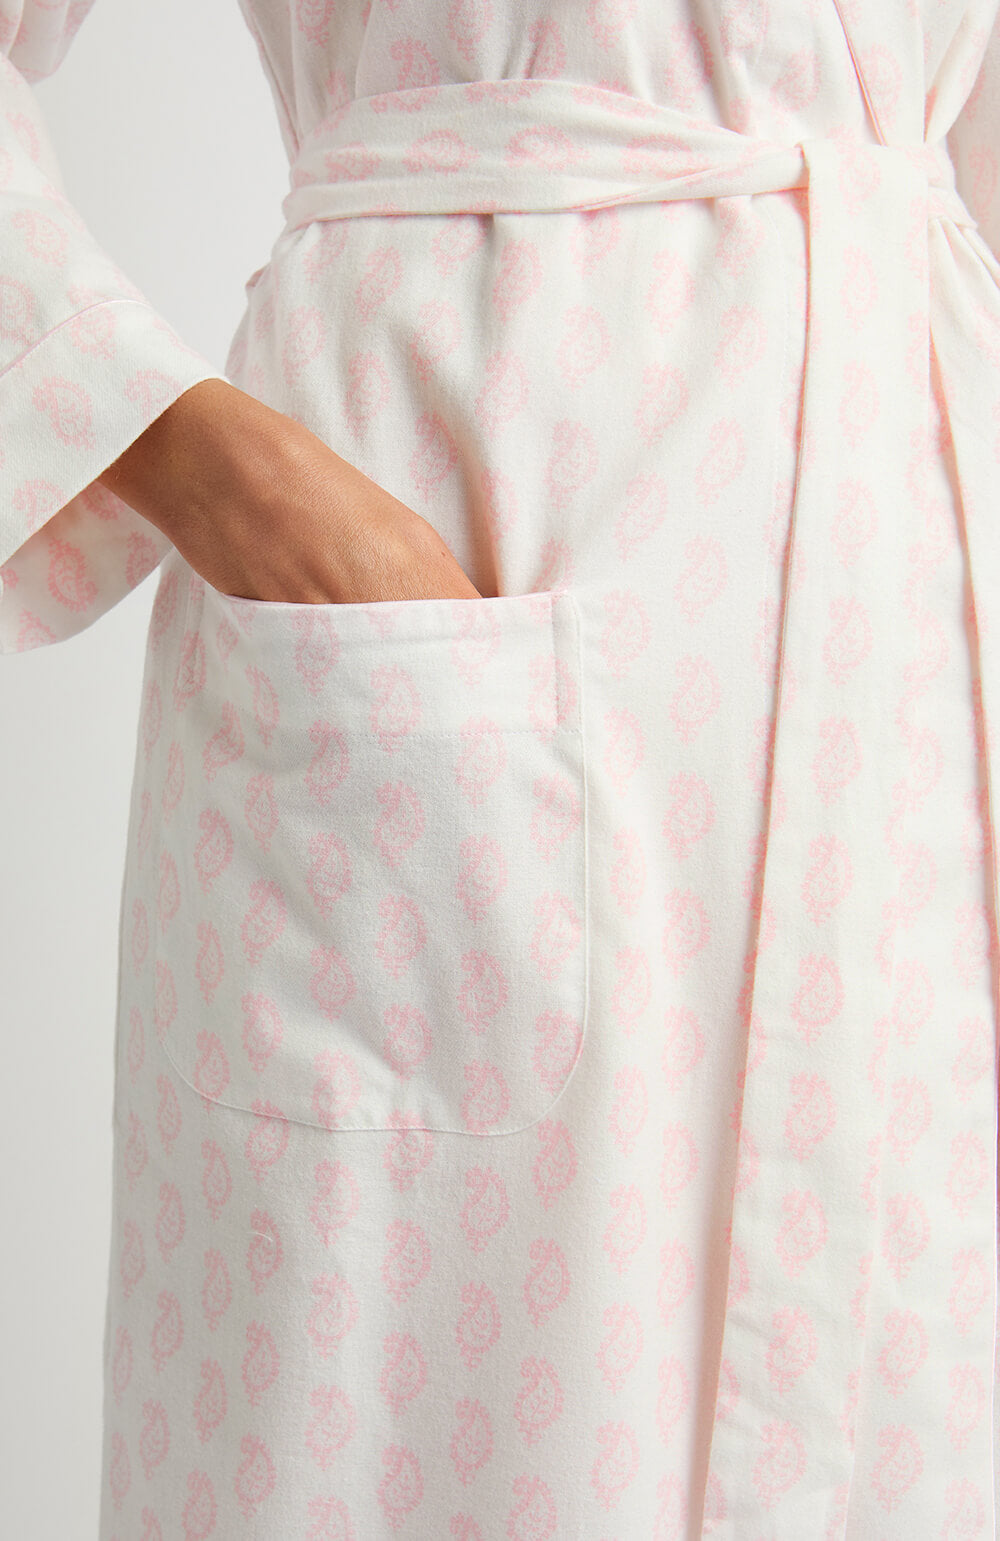 Brushed Pastel Gown (bldg) - Pink Paisley | Bonsoir of London